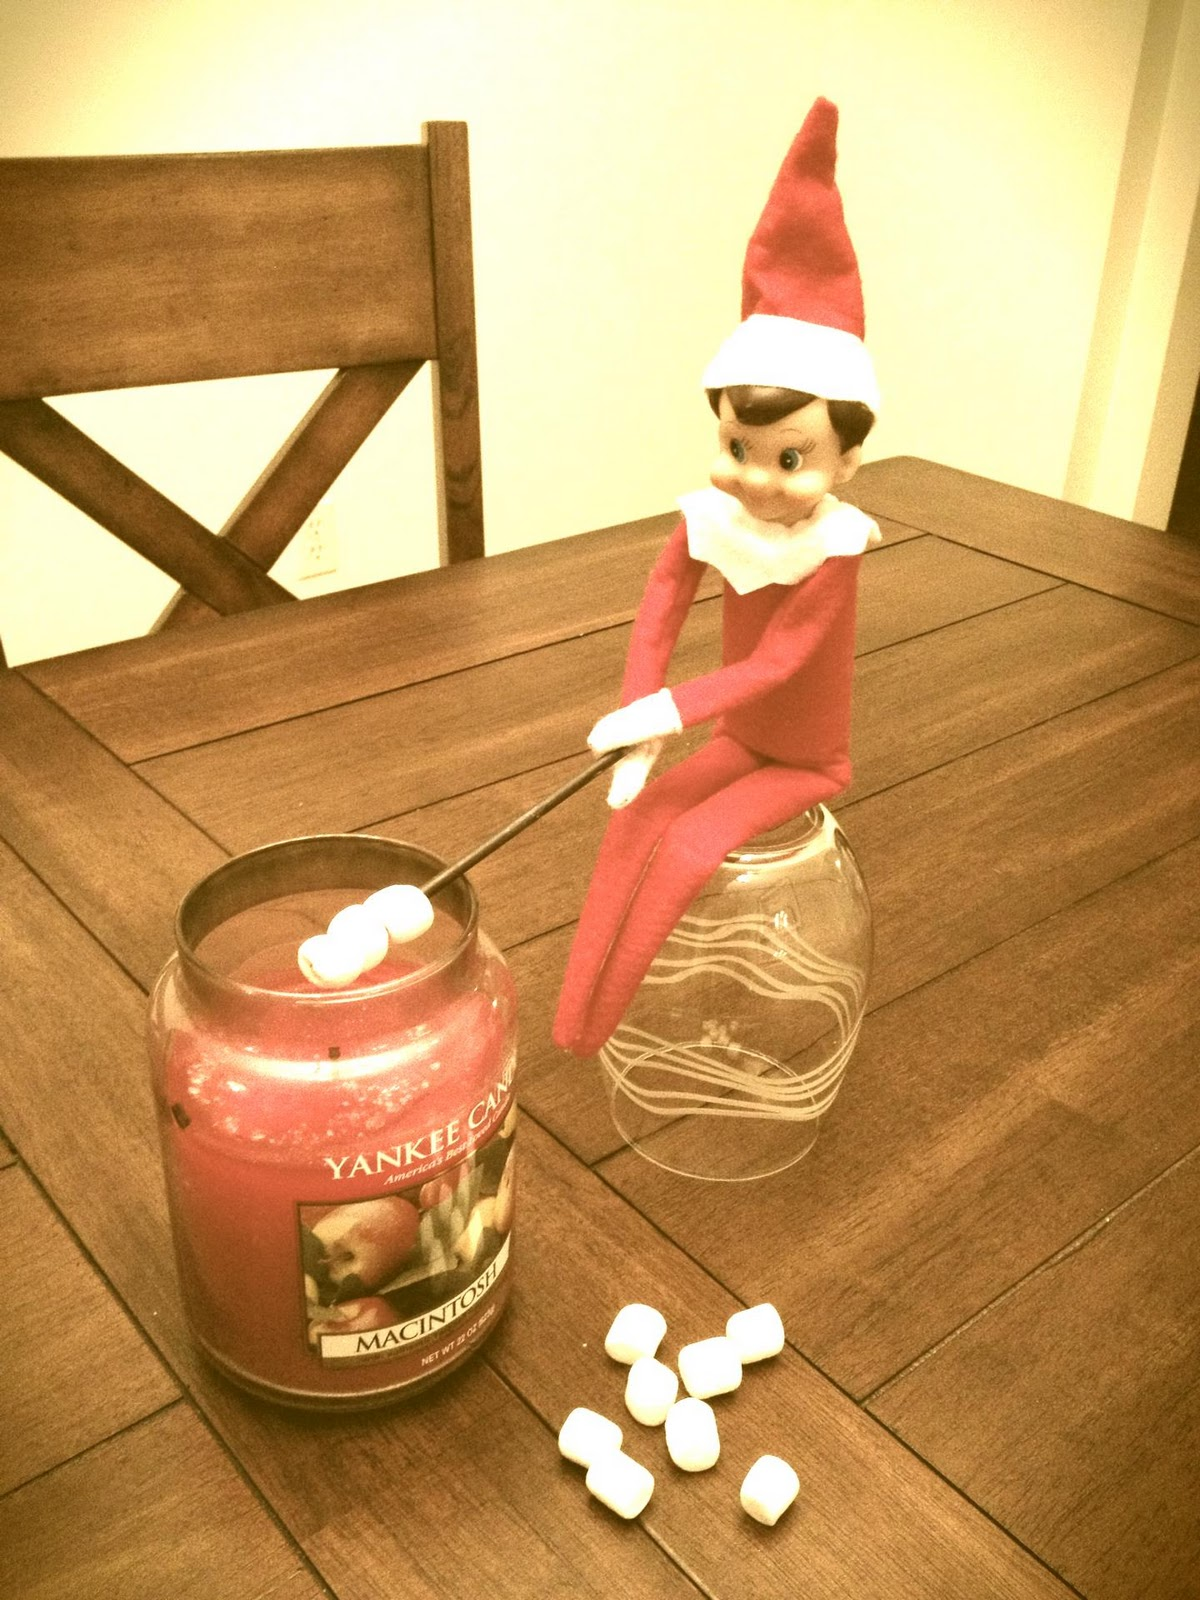 Sometimes the Elf is sitting on a different shelf and sometimes he goes all out, totally up to each Elf. Where to buy Elf on the Shelf. If you've never done Elf on the Shelf, you can order your own Elf on the Shelf kit on Amazon or Target (affiliate link). Once you get .